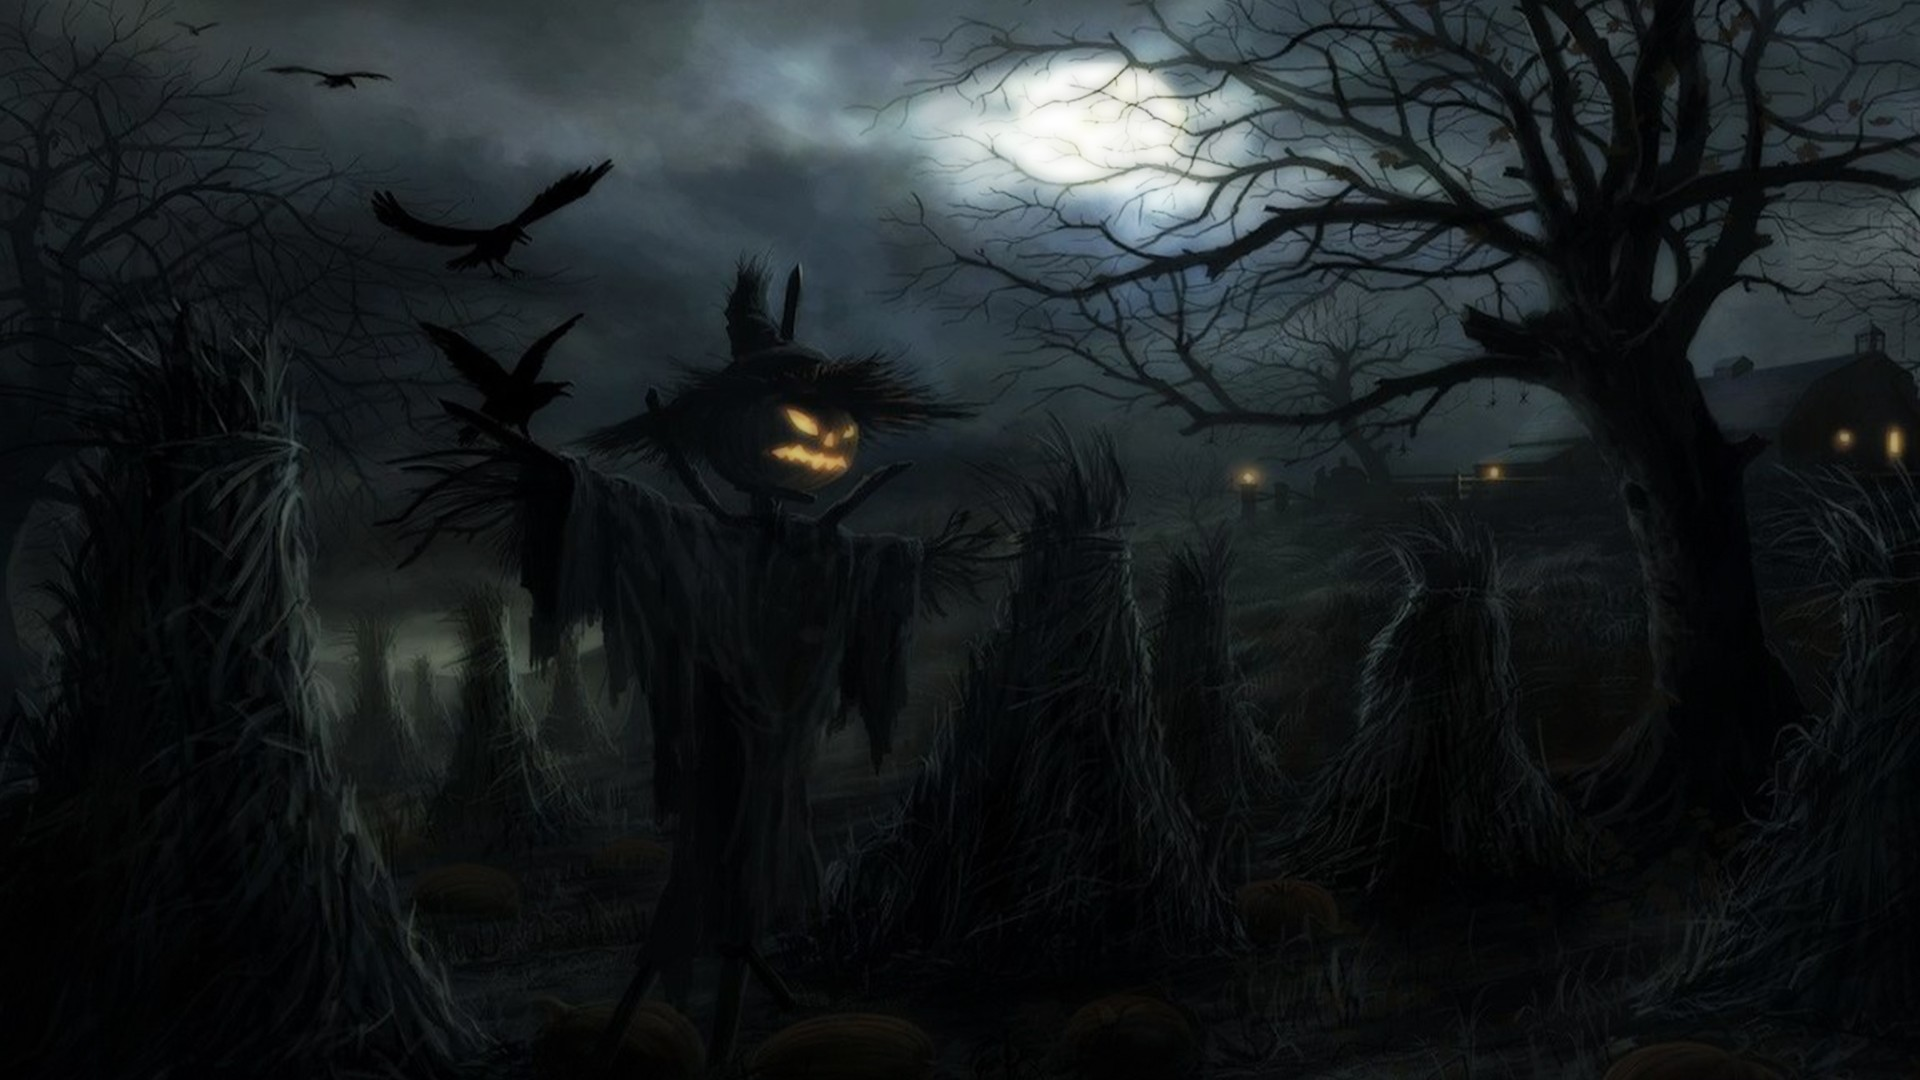 Scary Halloween Background Images (62+ images)